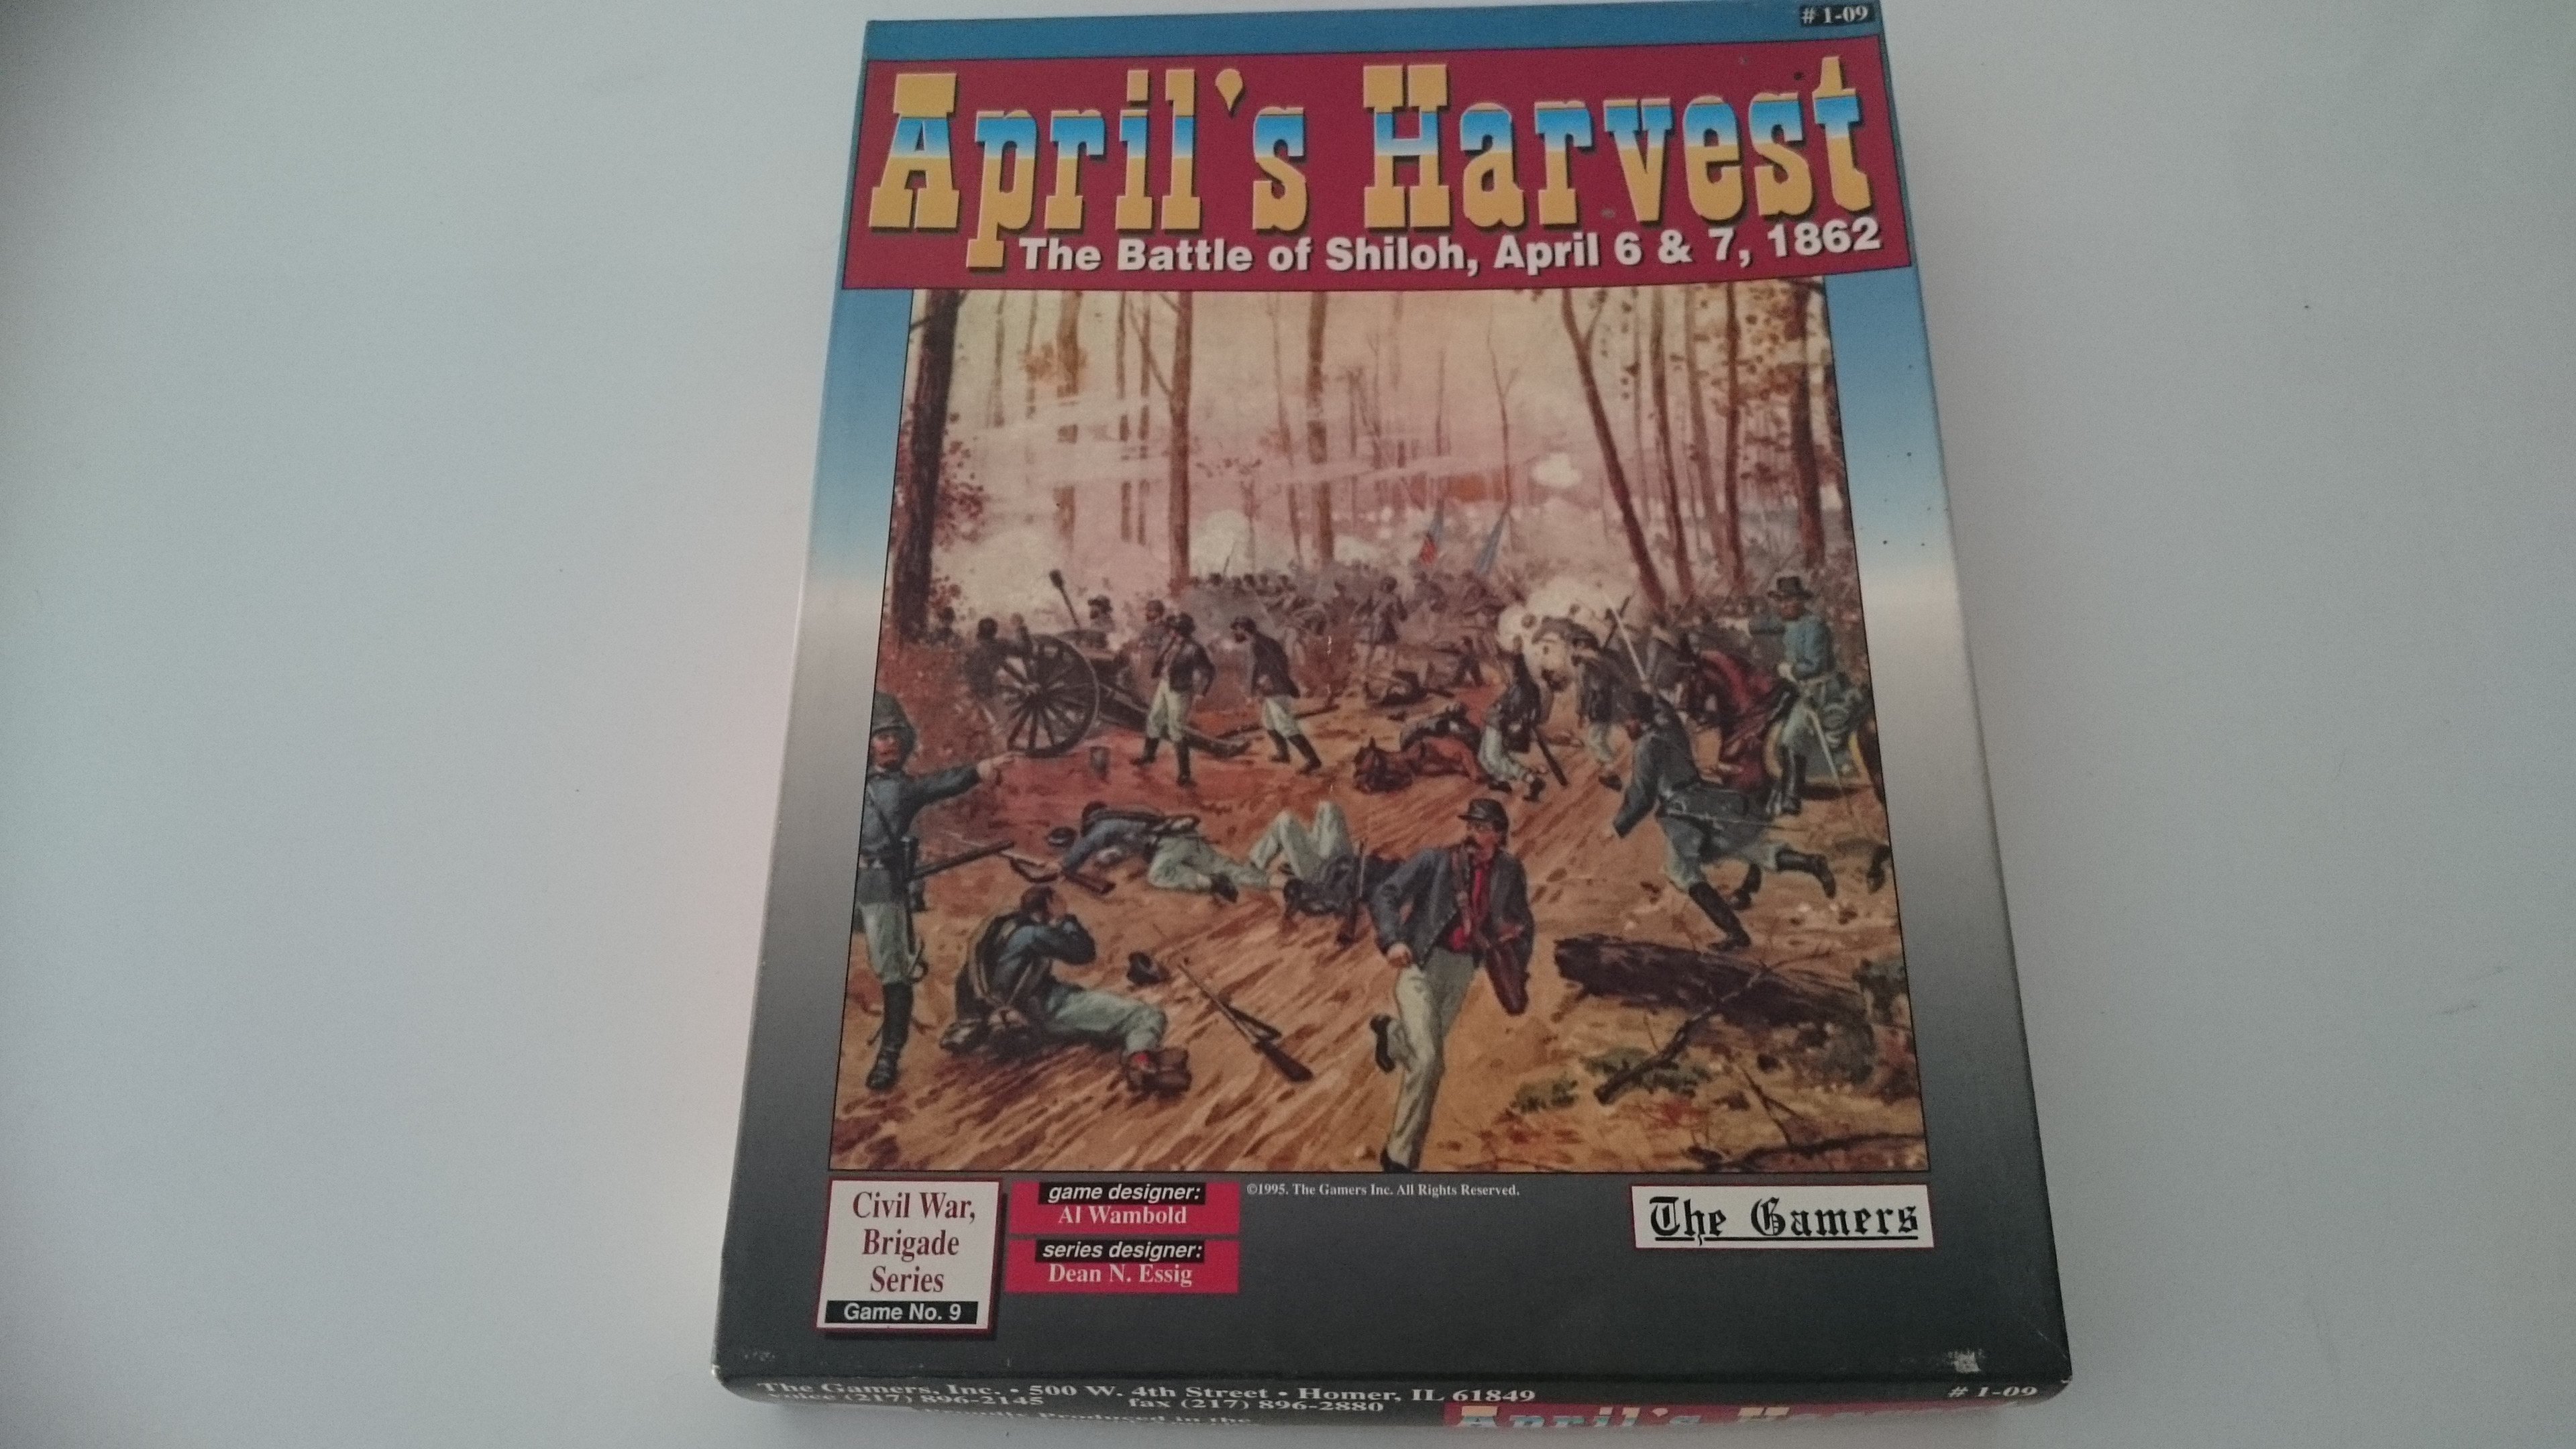 April's Harvest, The Battle of Shiloh, April 6-7, 1862